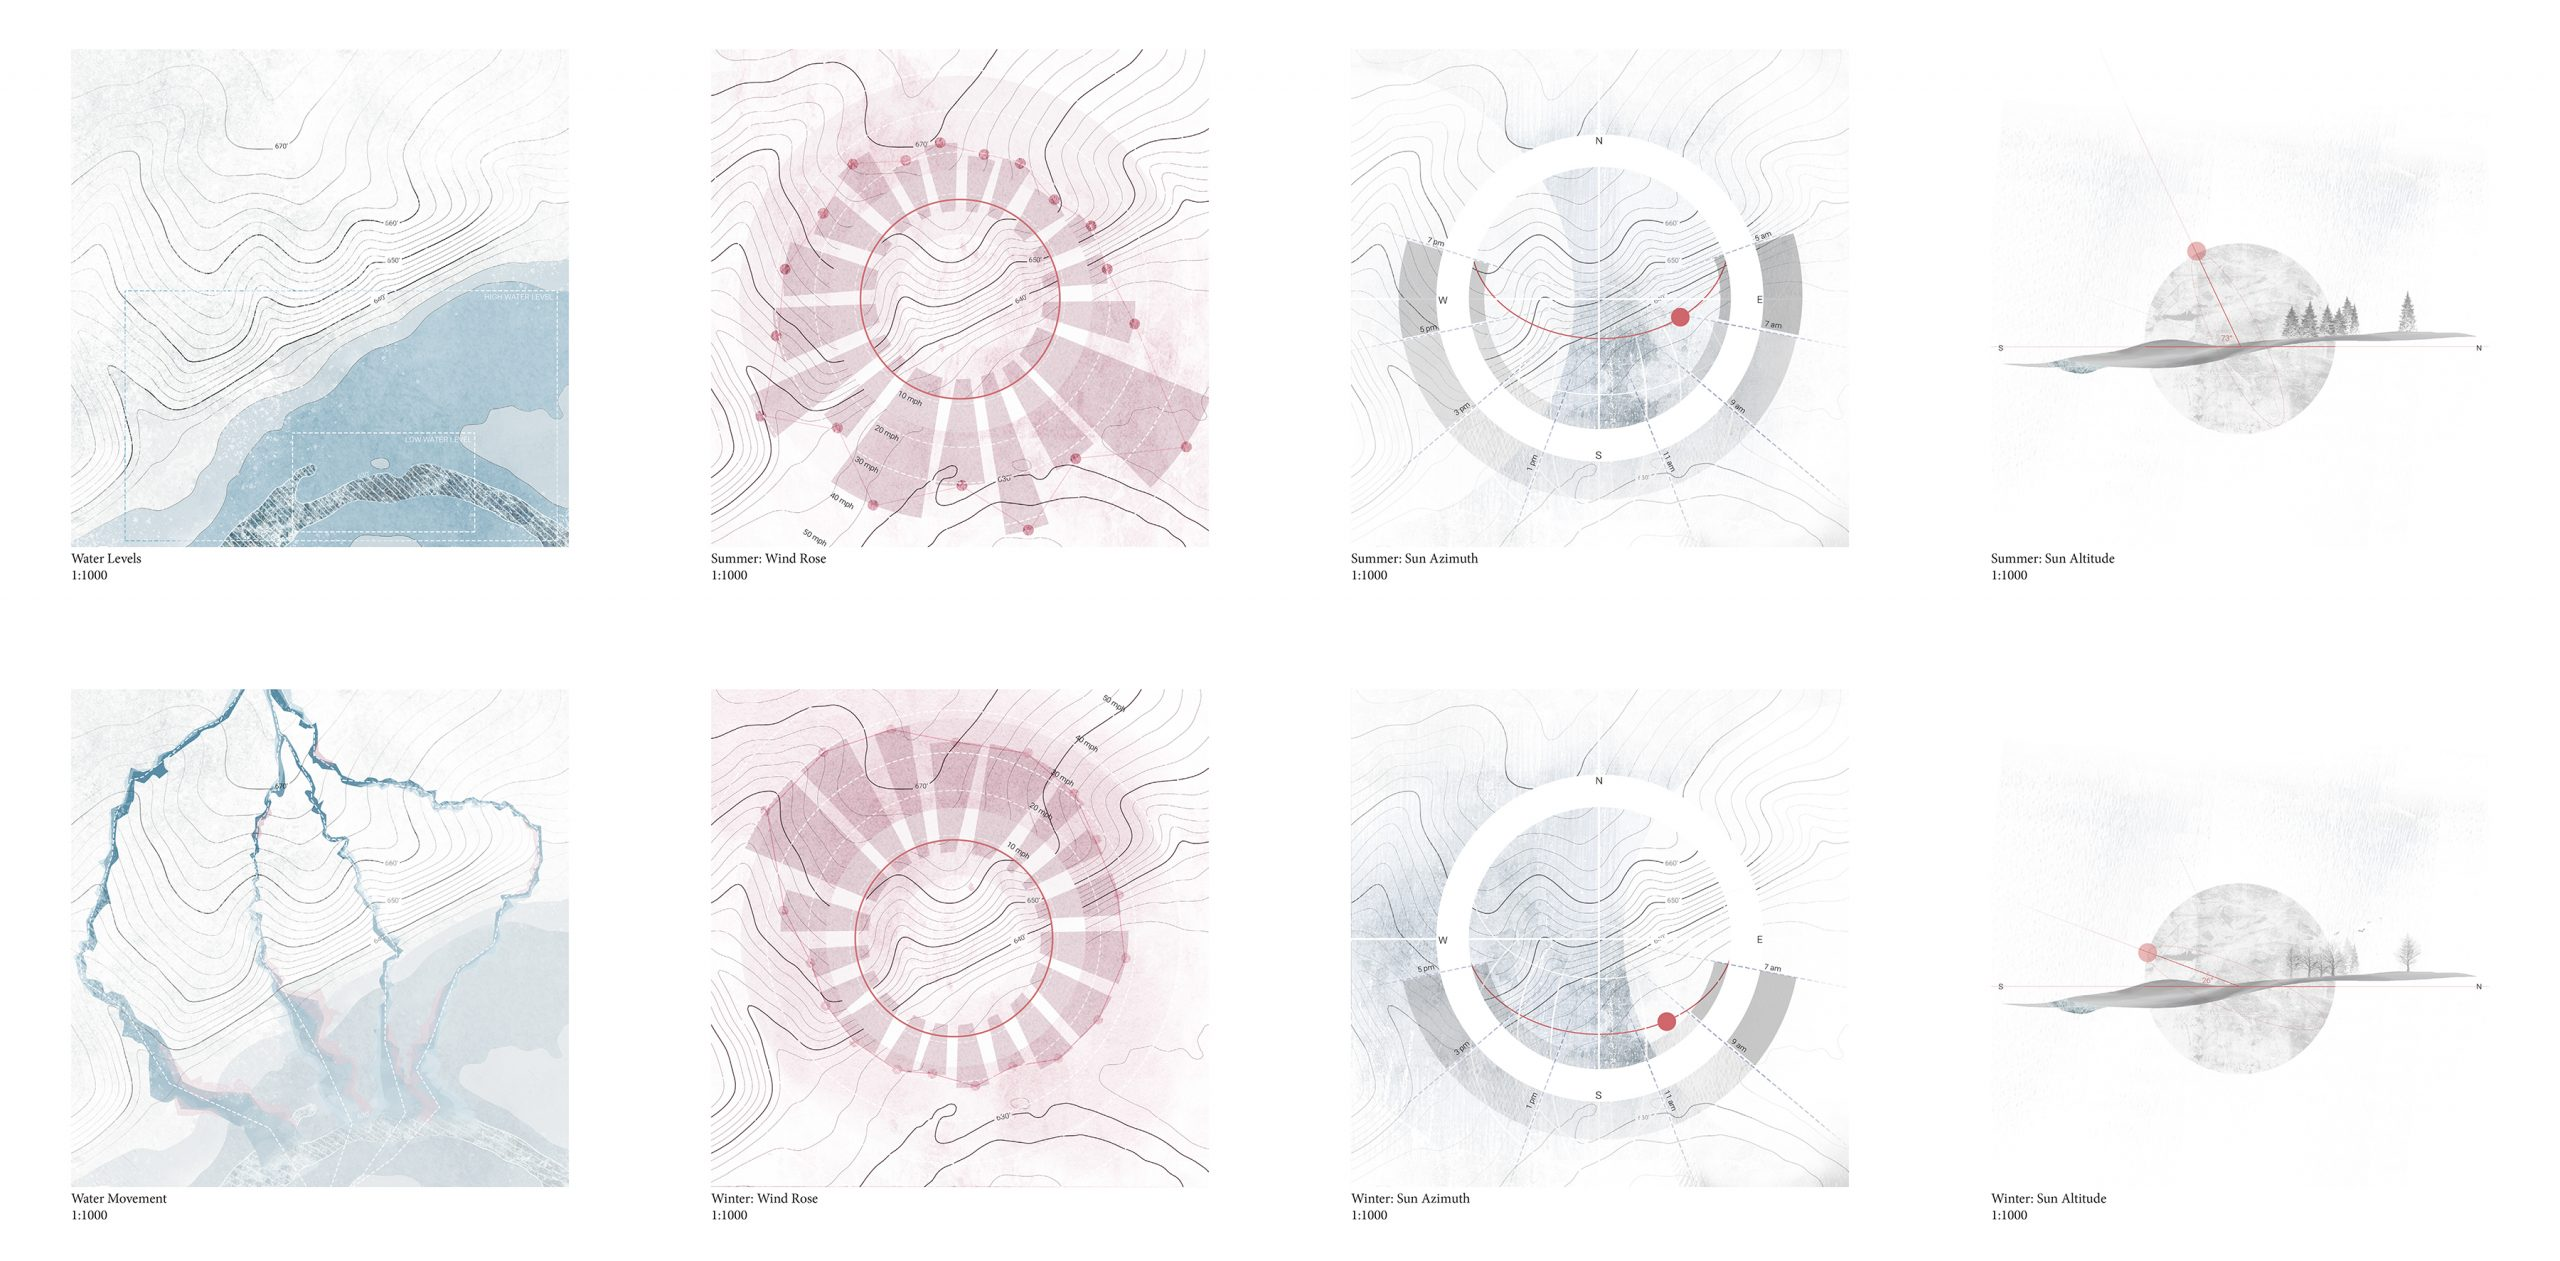 site diagrams in blue and pink hues